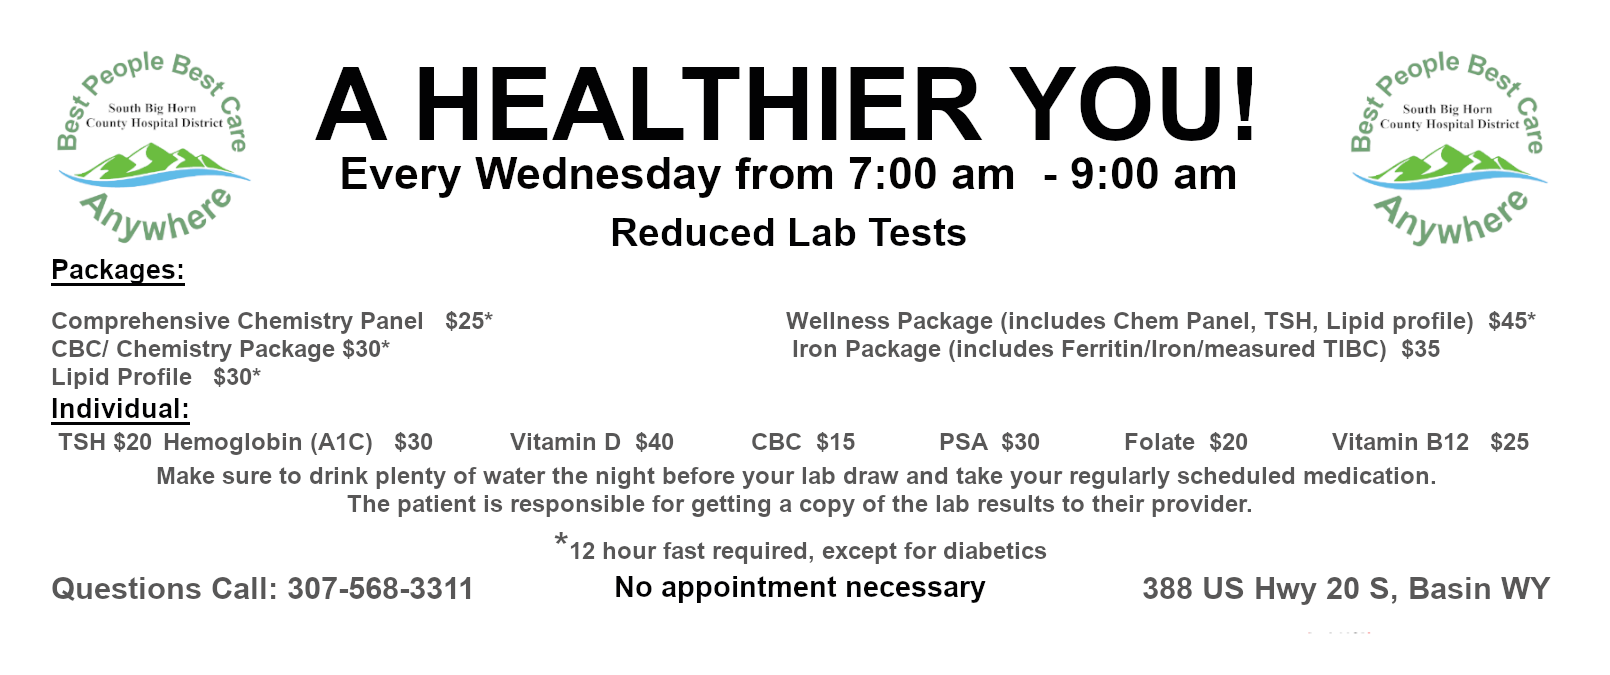 A HEALTHIER YOU! Reduced Lab Tests Every Wednesday from 7:00am-9:00am Packages: Comprehensive Chemistry Panel   $25*	CBC/ Chemistry Package $30*	 Iron Package (includes Ferritin/Iron/measured TIBC)   $35	Lipid Profile   $30 Wellness Package (includes Chem Panel, TSH, Lipid profile)  $45*	 Individual:  TSH $20	Hemoglobin (A1C)   $30	Vitamin D  $40	CBC  $15	PSA  $30	 Folate  $20	Vitamin B12   $25 *12 hour fast required, except for diabetics  Make sure to drink plenty of water the night before your lab draw and take your regularly scheduled medication. The patient is responsible for getting a copy of the lab results to their provider. 307) 568-3311			 388 US Hwy 20, Basin WY 82410